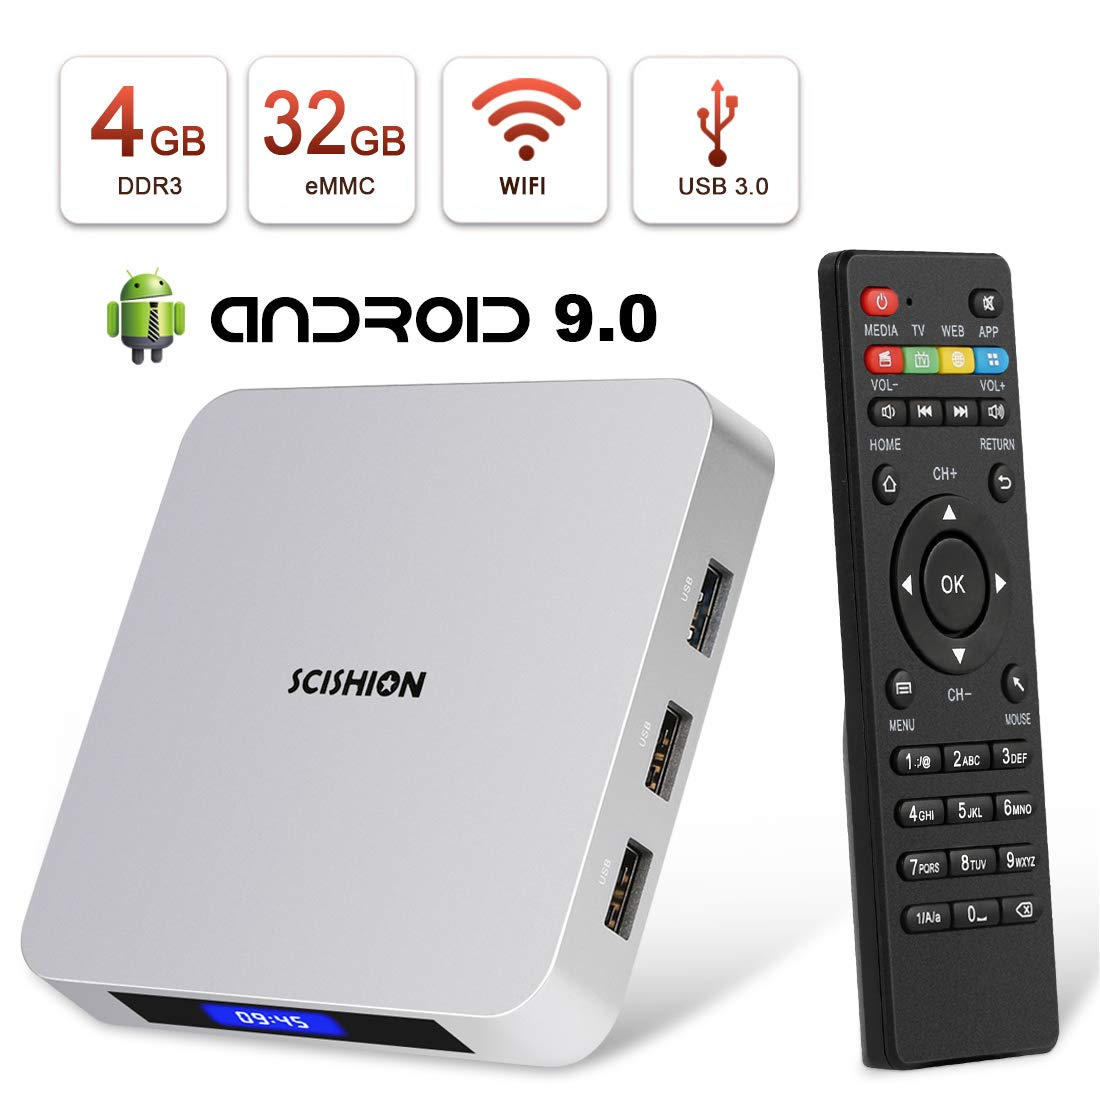 Android TV Box,HAOSIHD AI ONE Android 9.0 TV Box with 4GB RAM 32GB ROM RK3328 Quad-core,Support 4K Full HD BT 4.0 Smart Internet TV Box by HAOSIHD